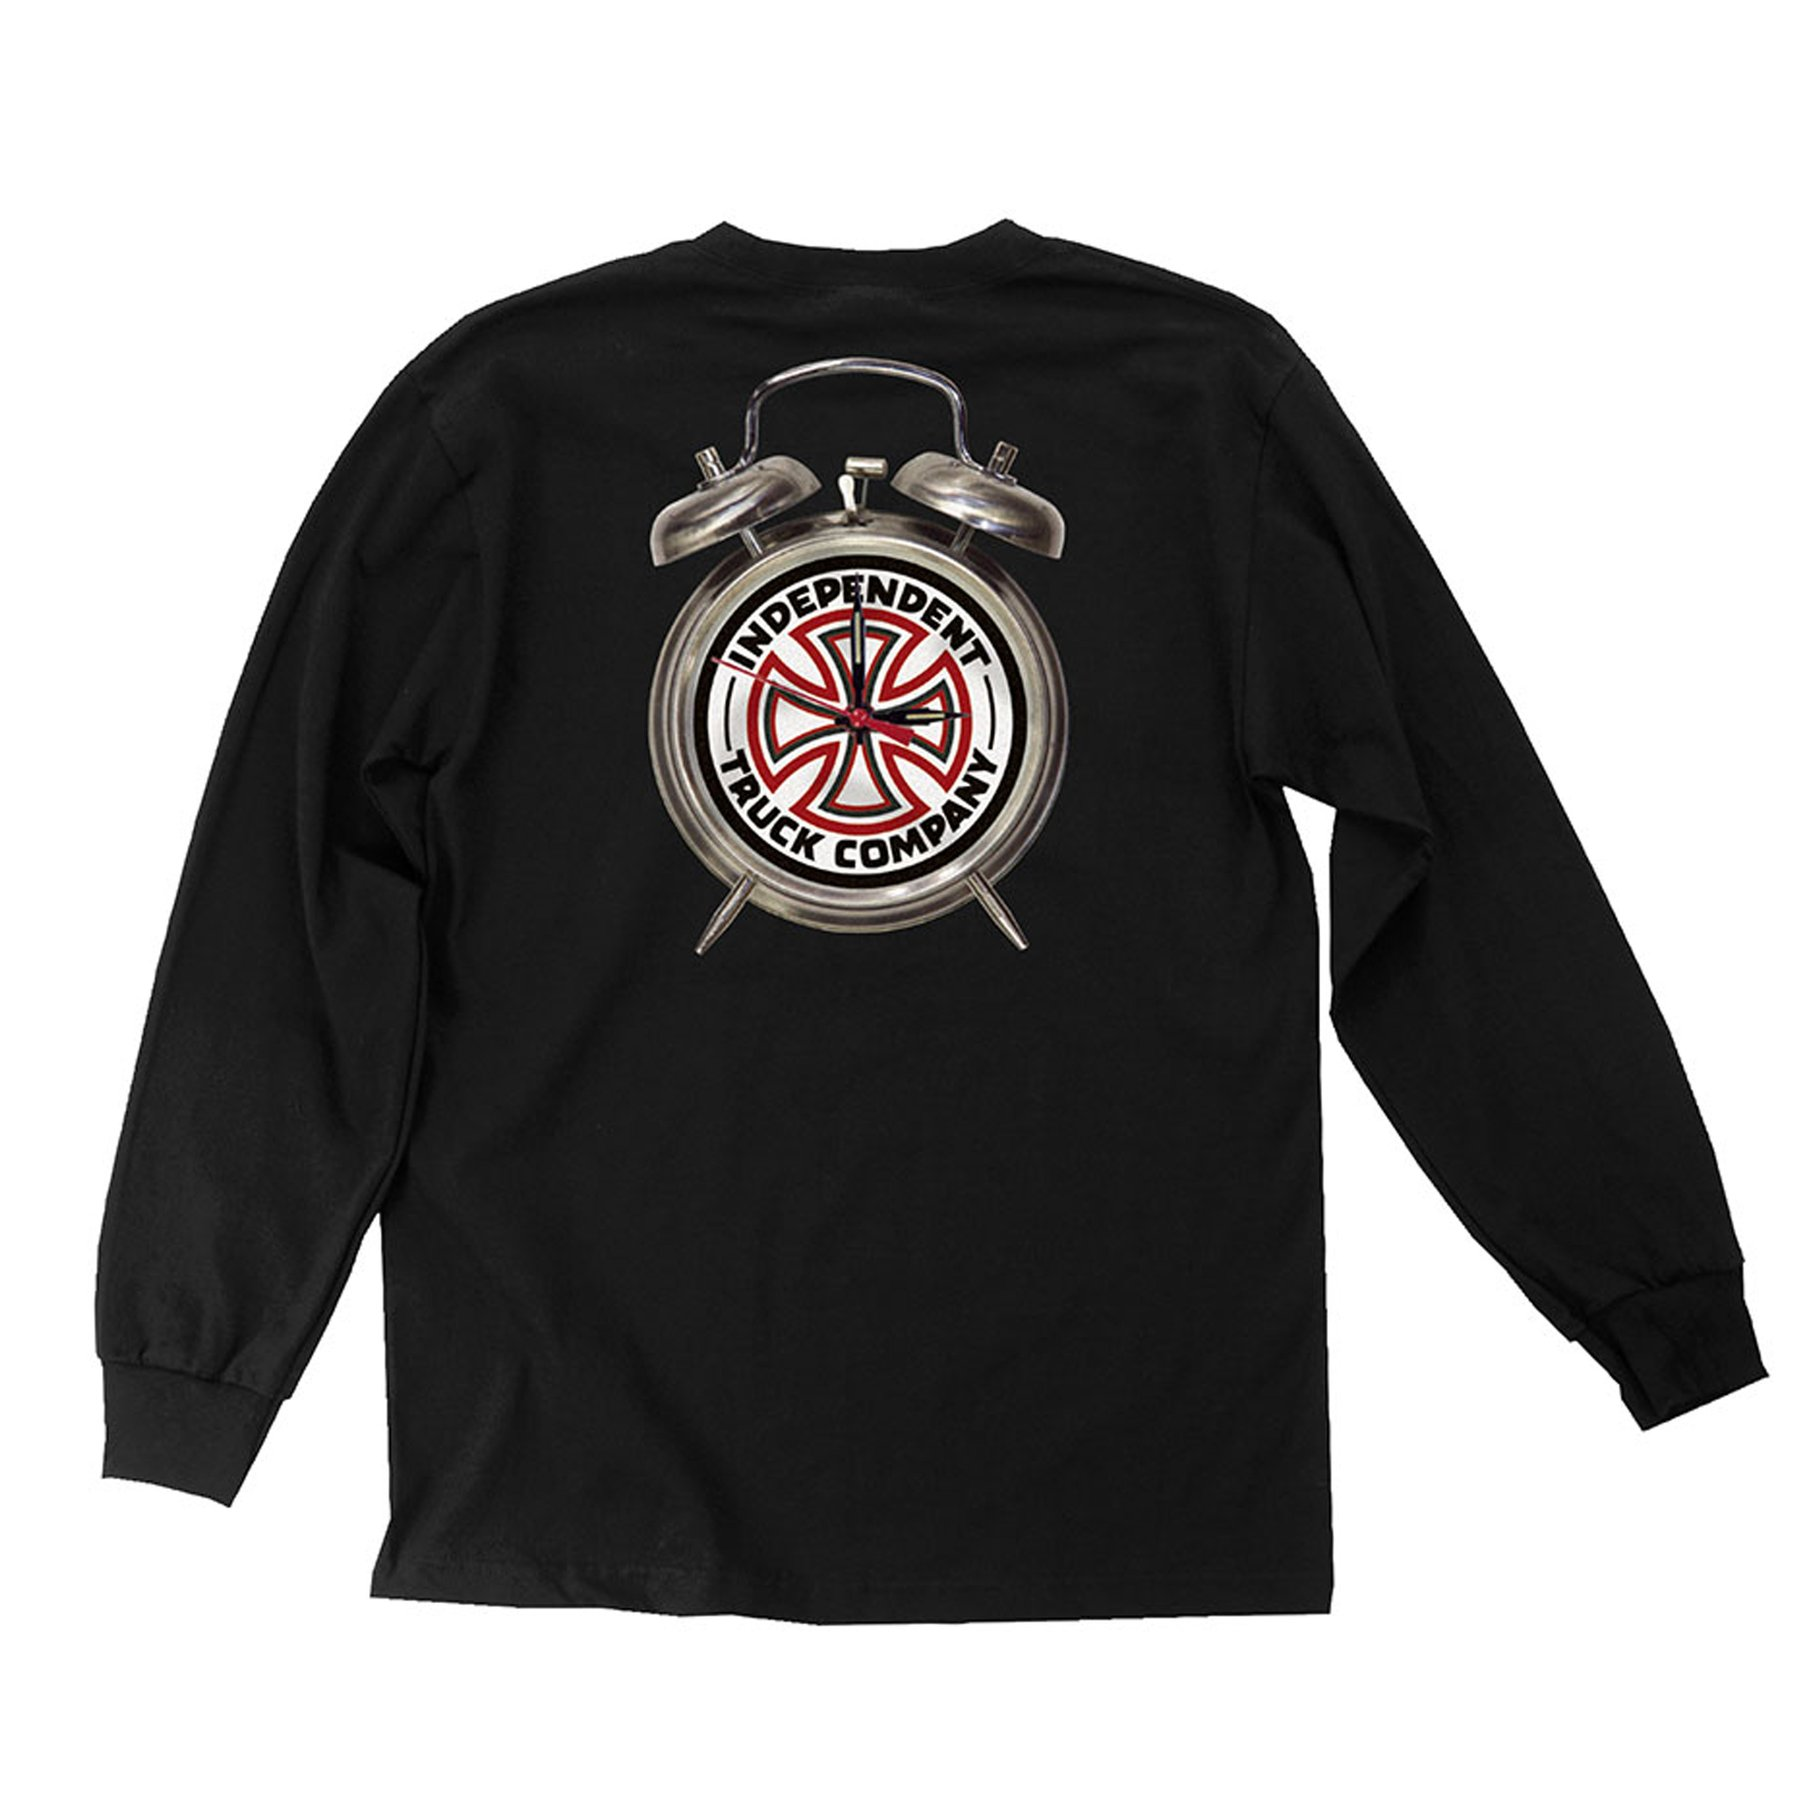 Футболка Independent x Thrasher TTG L/S Regular Черный